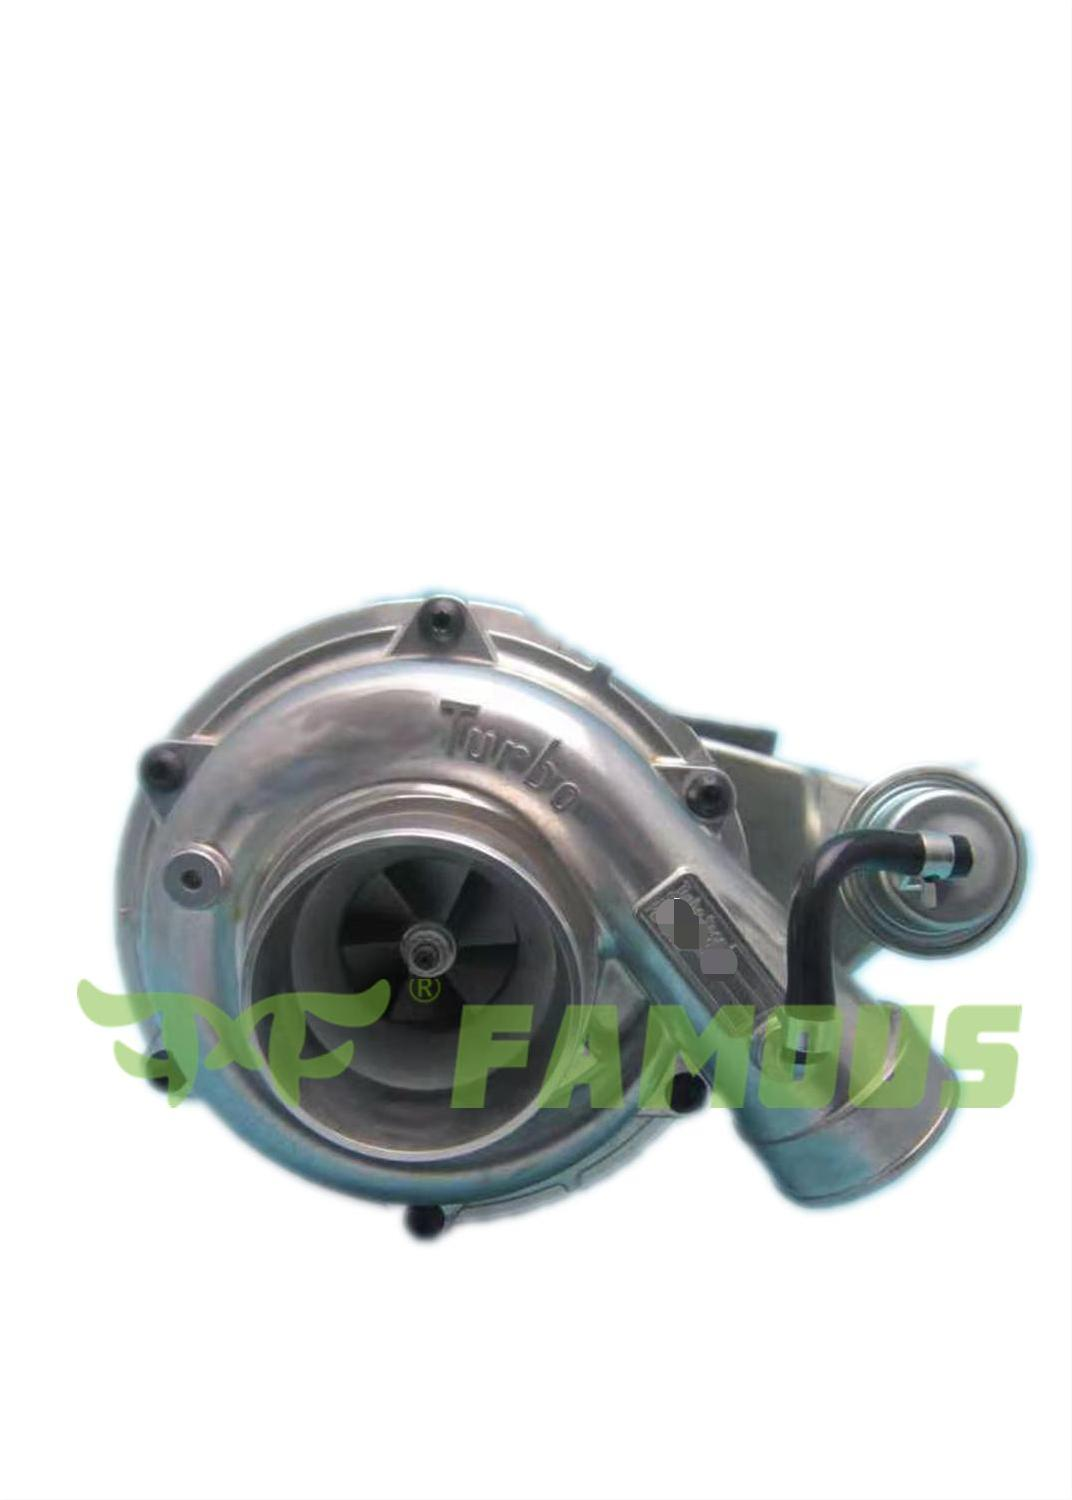 RHE6 Turbochargers, Part Number: 8980787791. Used for: Hino, Isuzu and Yanmar